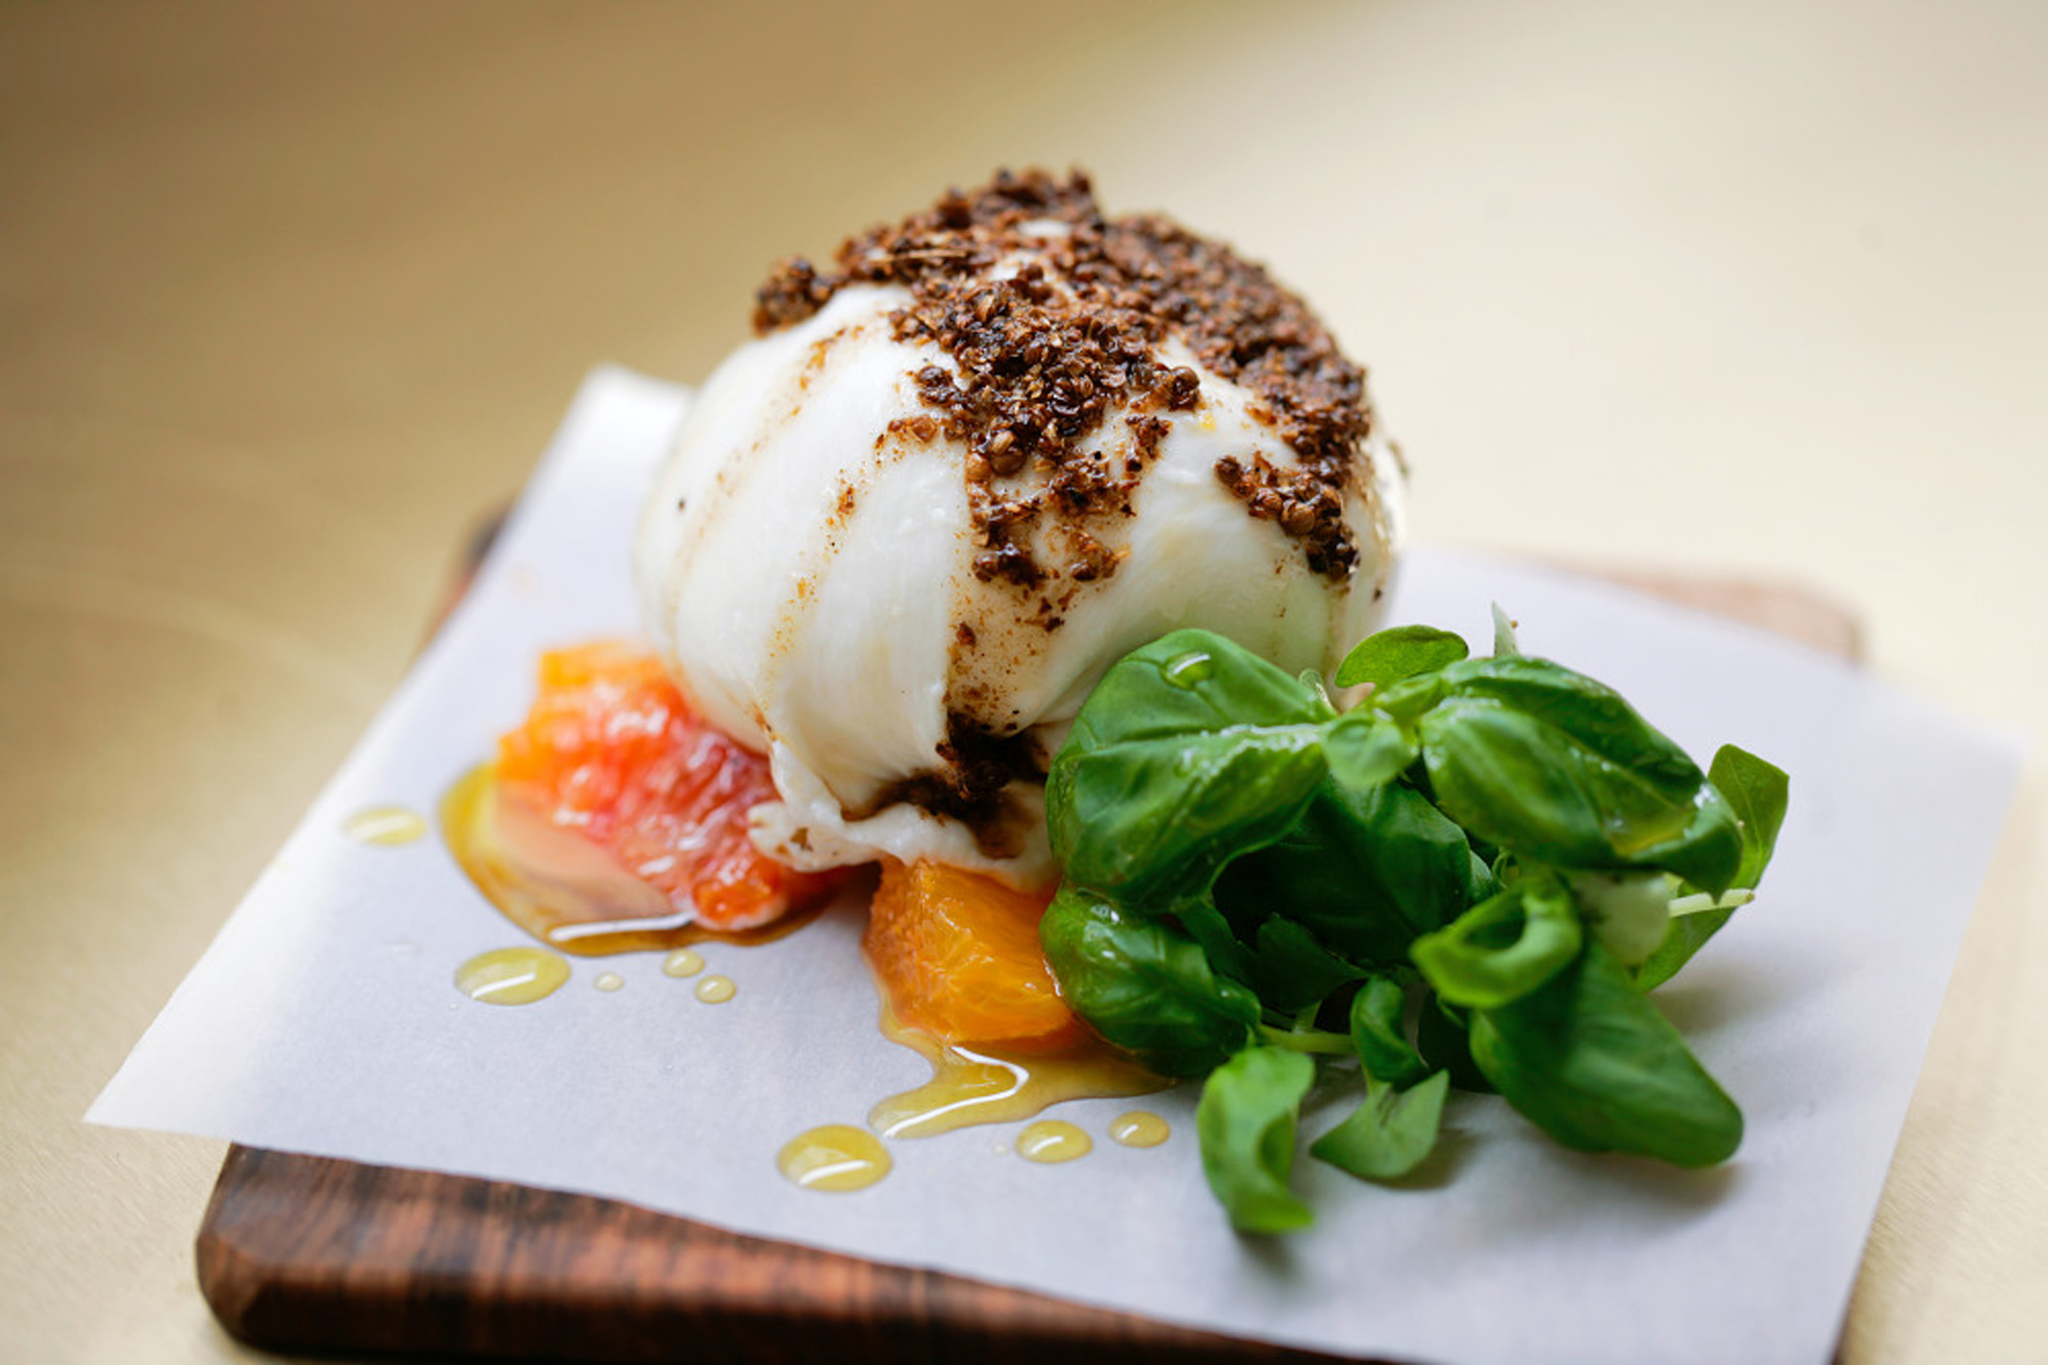 Burrata with miyagawa and coriander seeds at NOPI